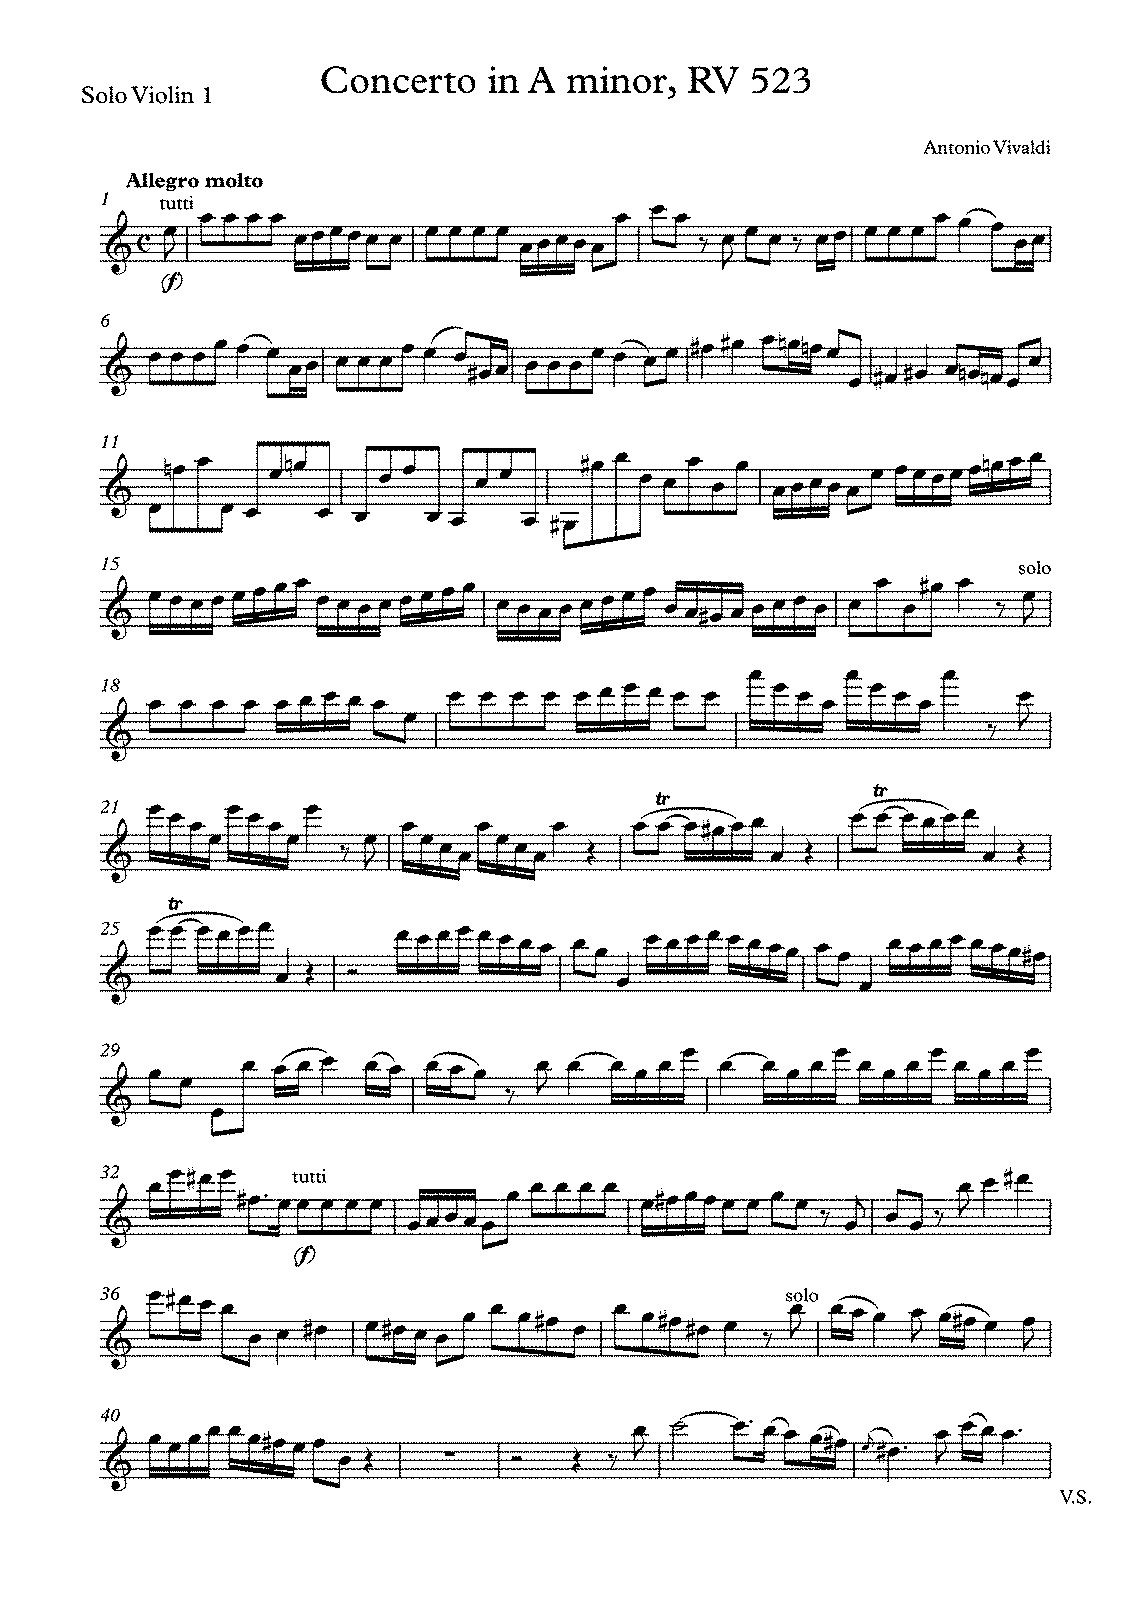 PMLP547382-Antonio Vivaldi - Concerto for 2 Violins in A minor, RV 523 - Solo Violin 1.pdf